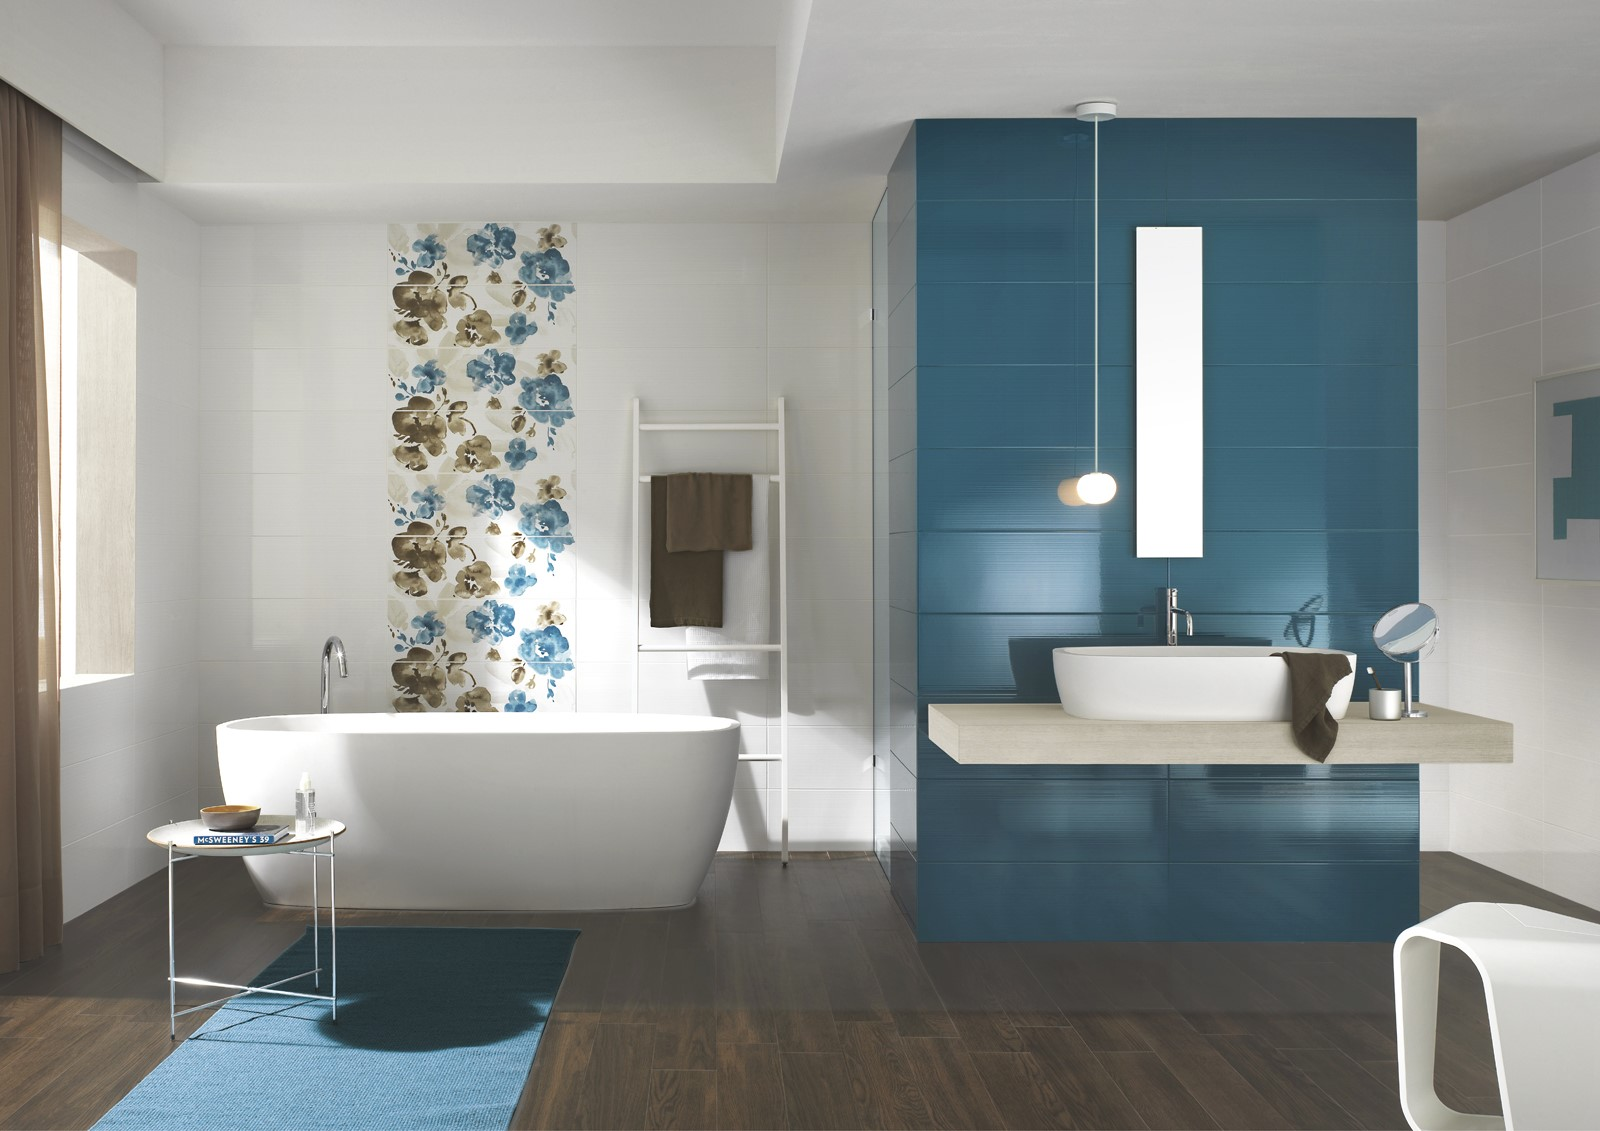 Bathroom concept d tile warehouse for Carrelage salle de bain blanc brillant